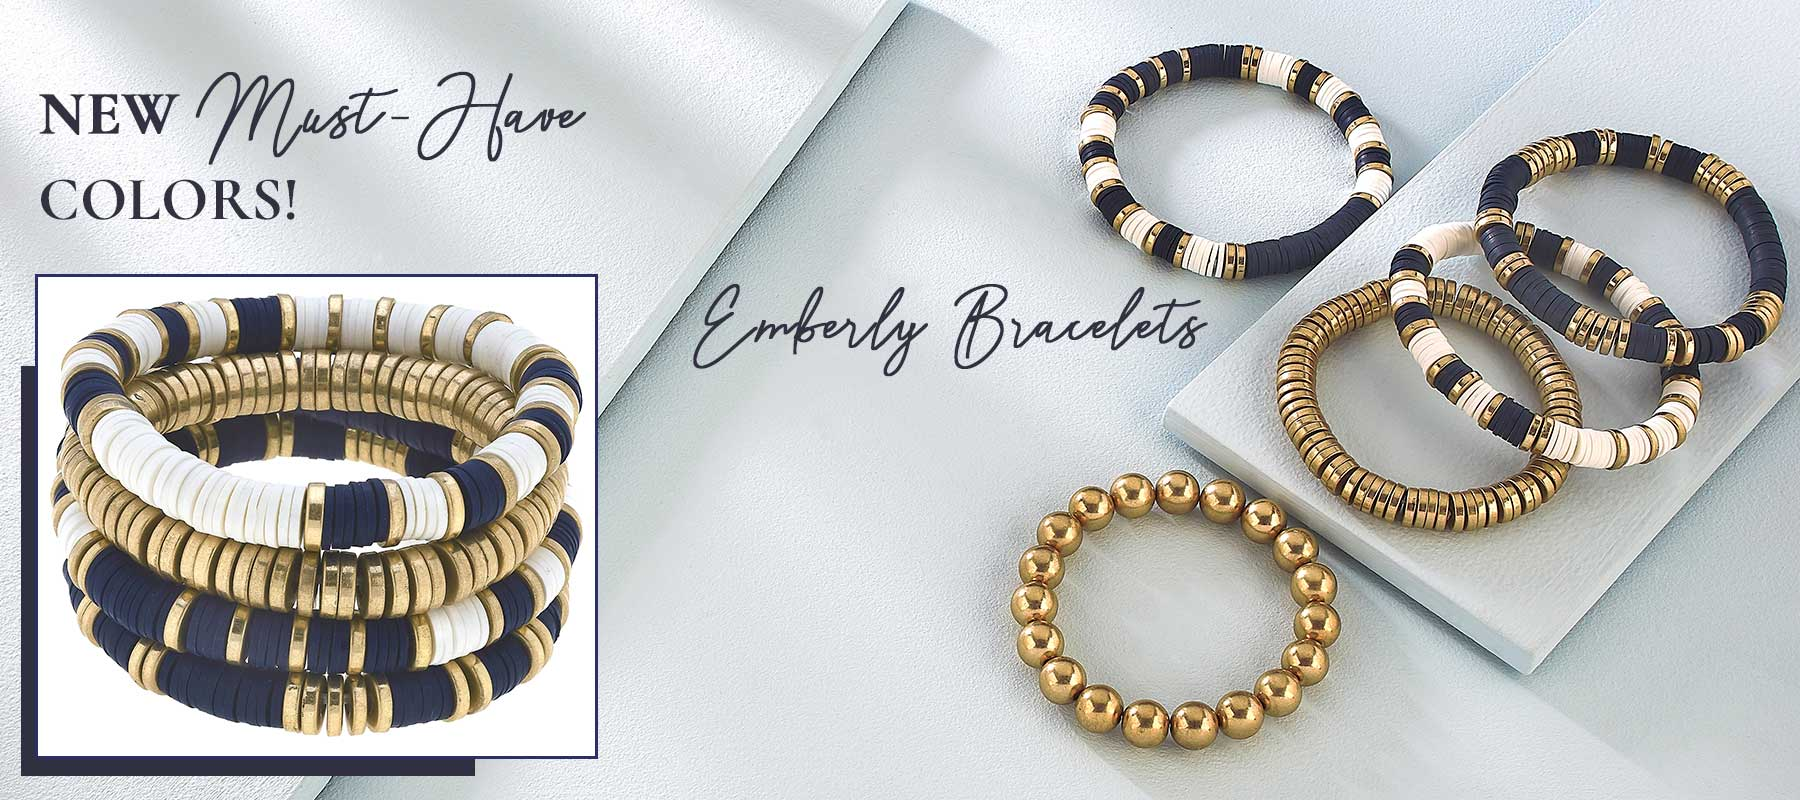 New, Must-Have Colors for Emberly Bracelets!